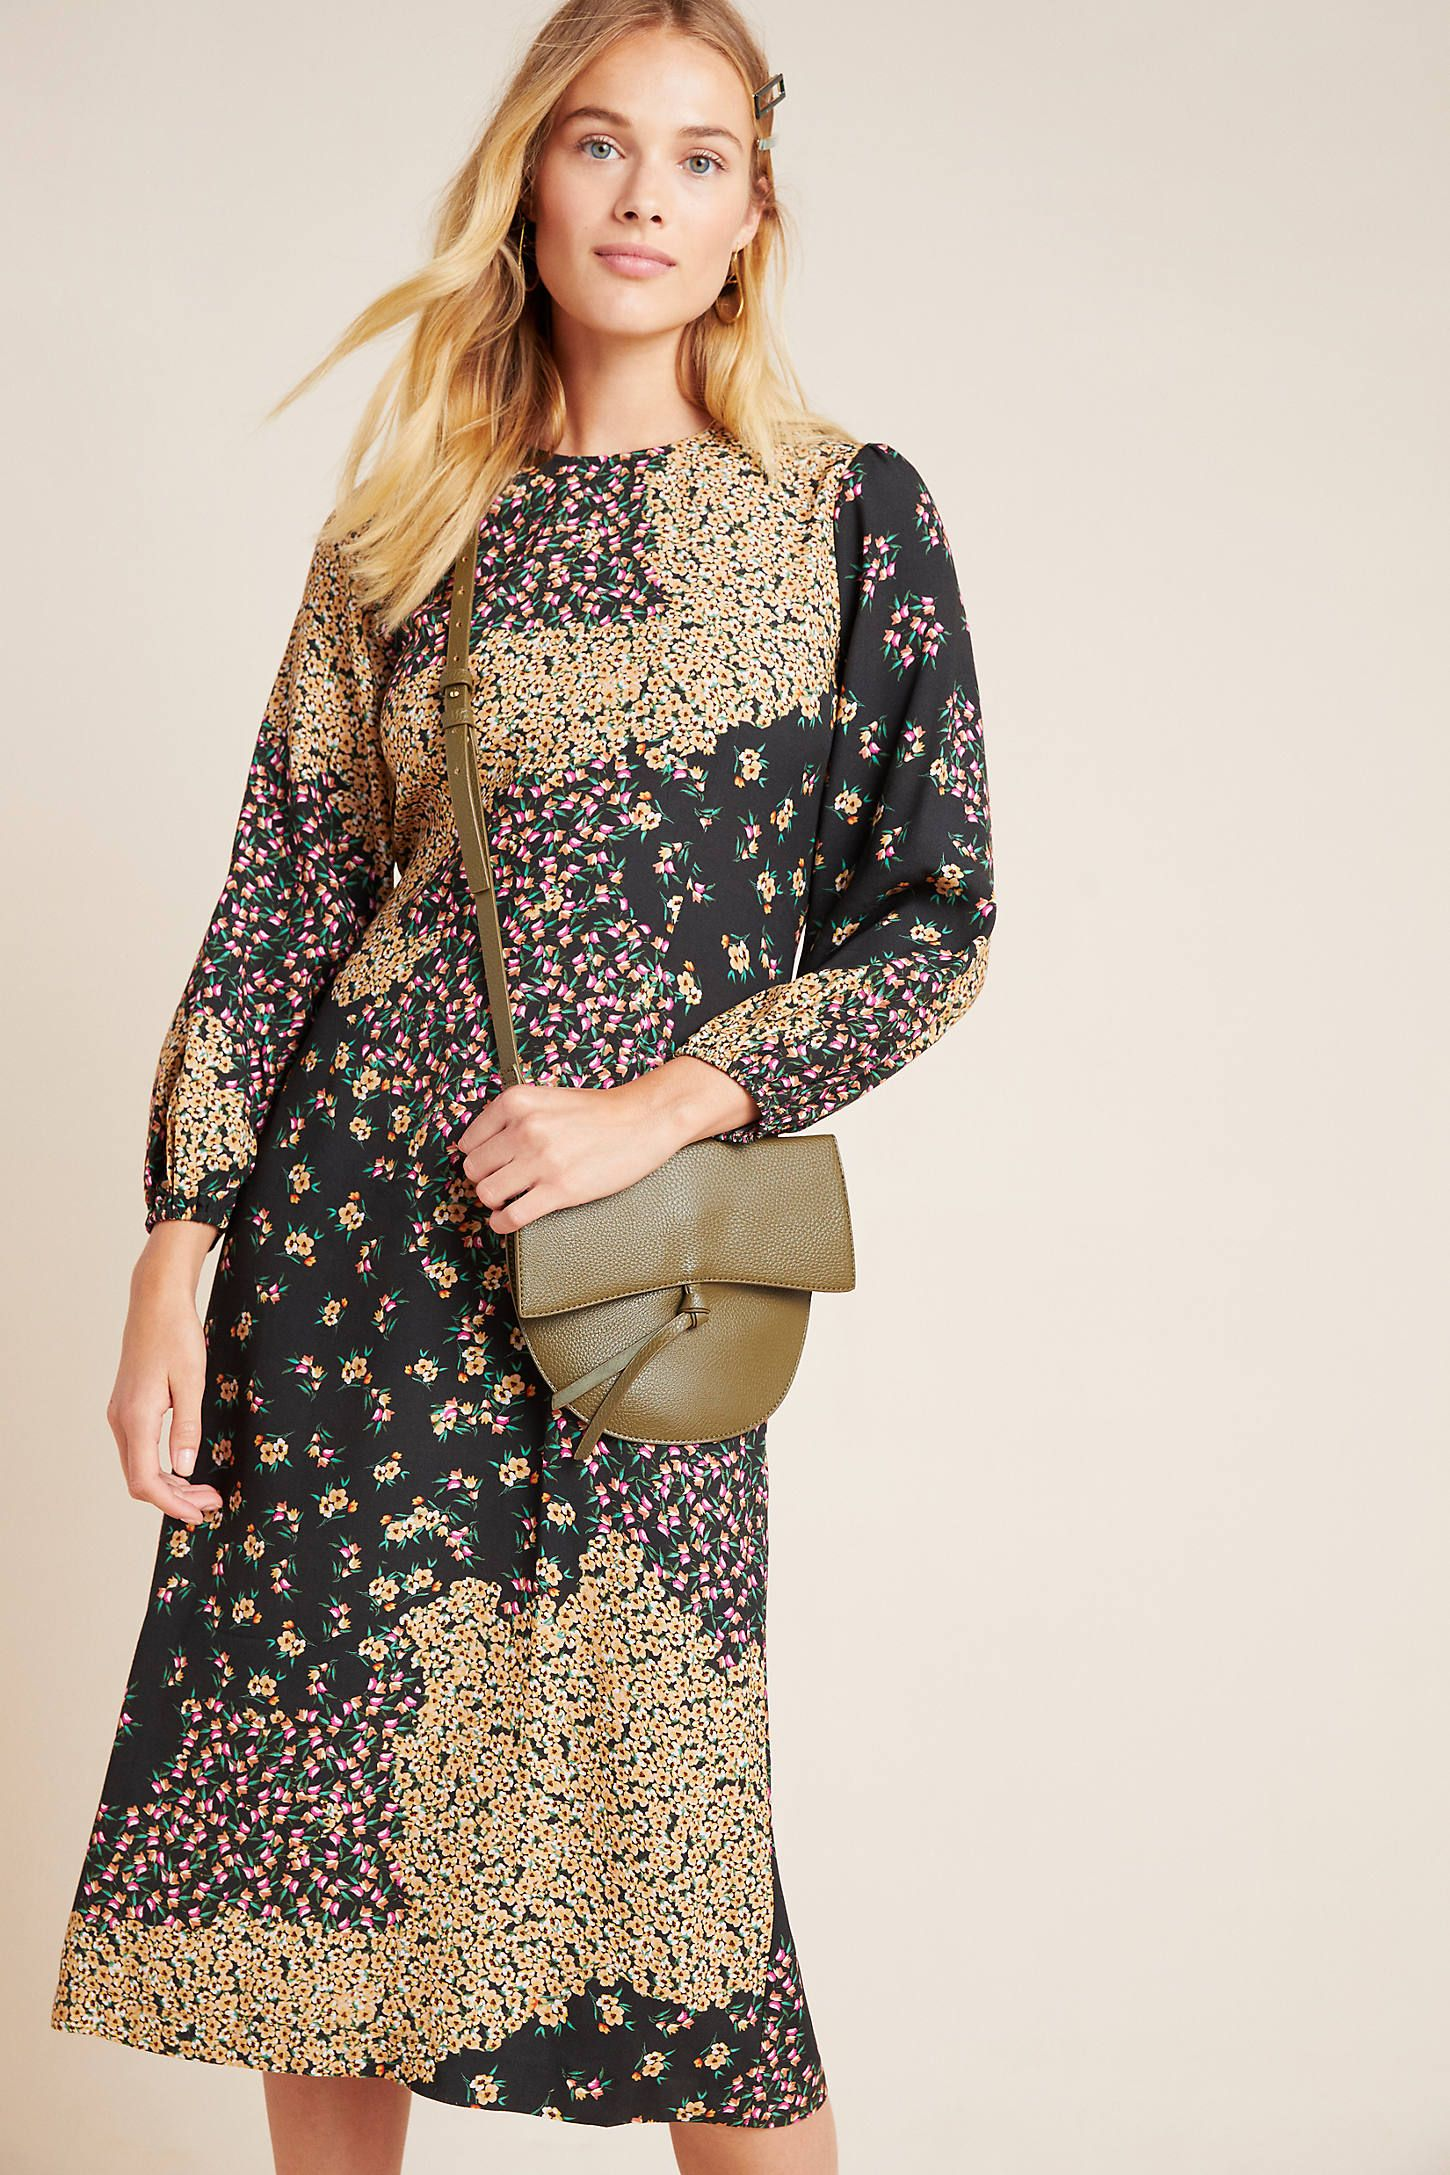 2020 Women Dress Casual Dress Print Spaghetti Strap Casual Dresses With Pockets